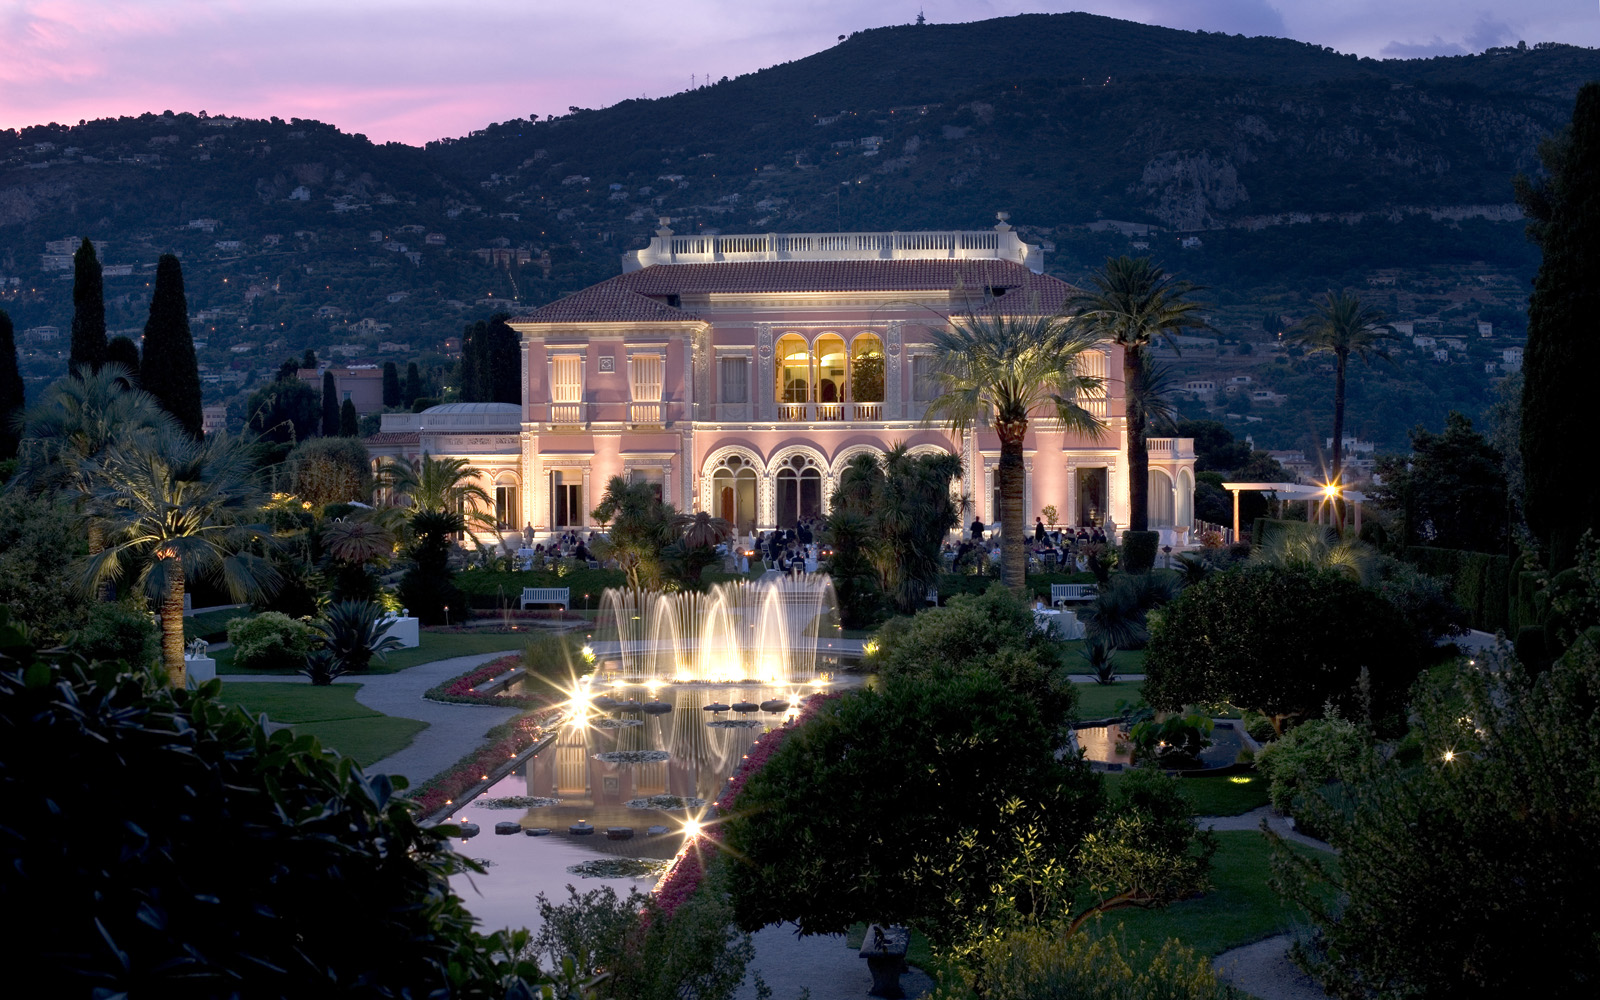 Villa Ephrussi de Rothschild in Saint-Jean-Cap-Ferrat